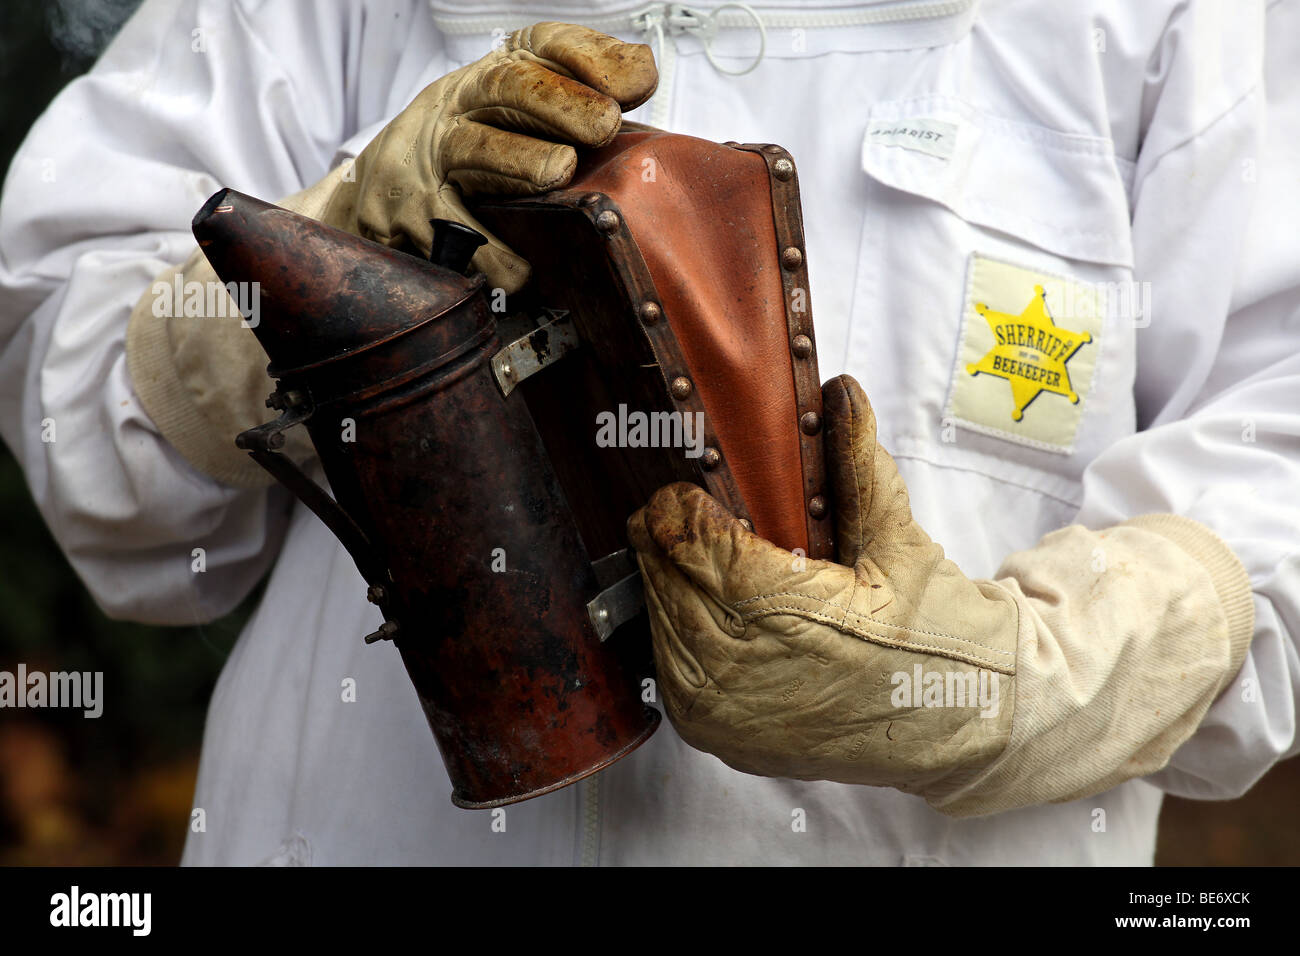 Picture by Mark Passmore. 19/09/2009. Generic picture of a Smoker held by a Beekeeper. - Stock Image